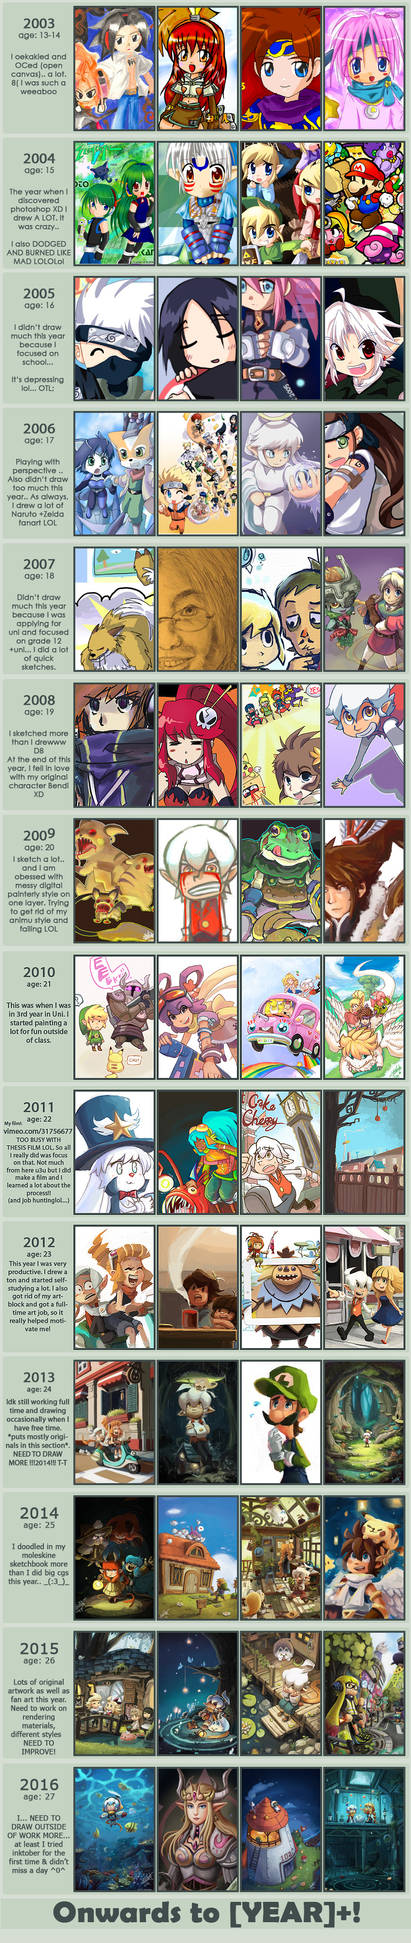 2003-2016 Improvement Meme by BettyKwong